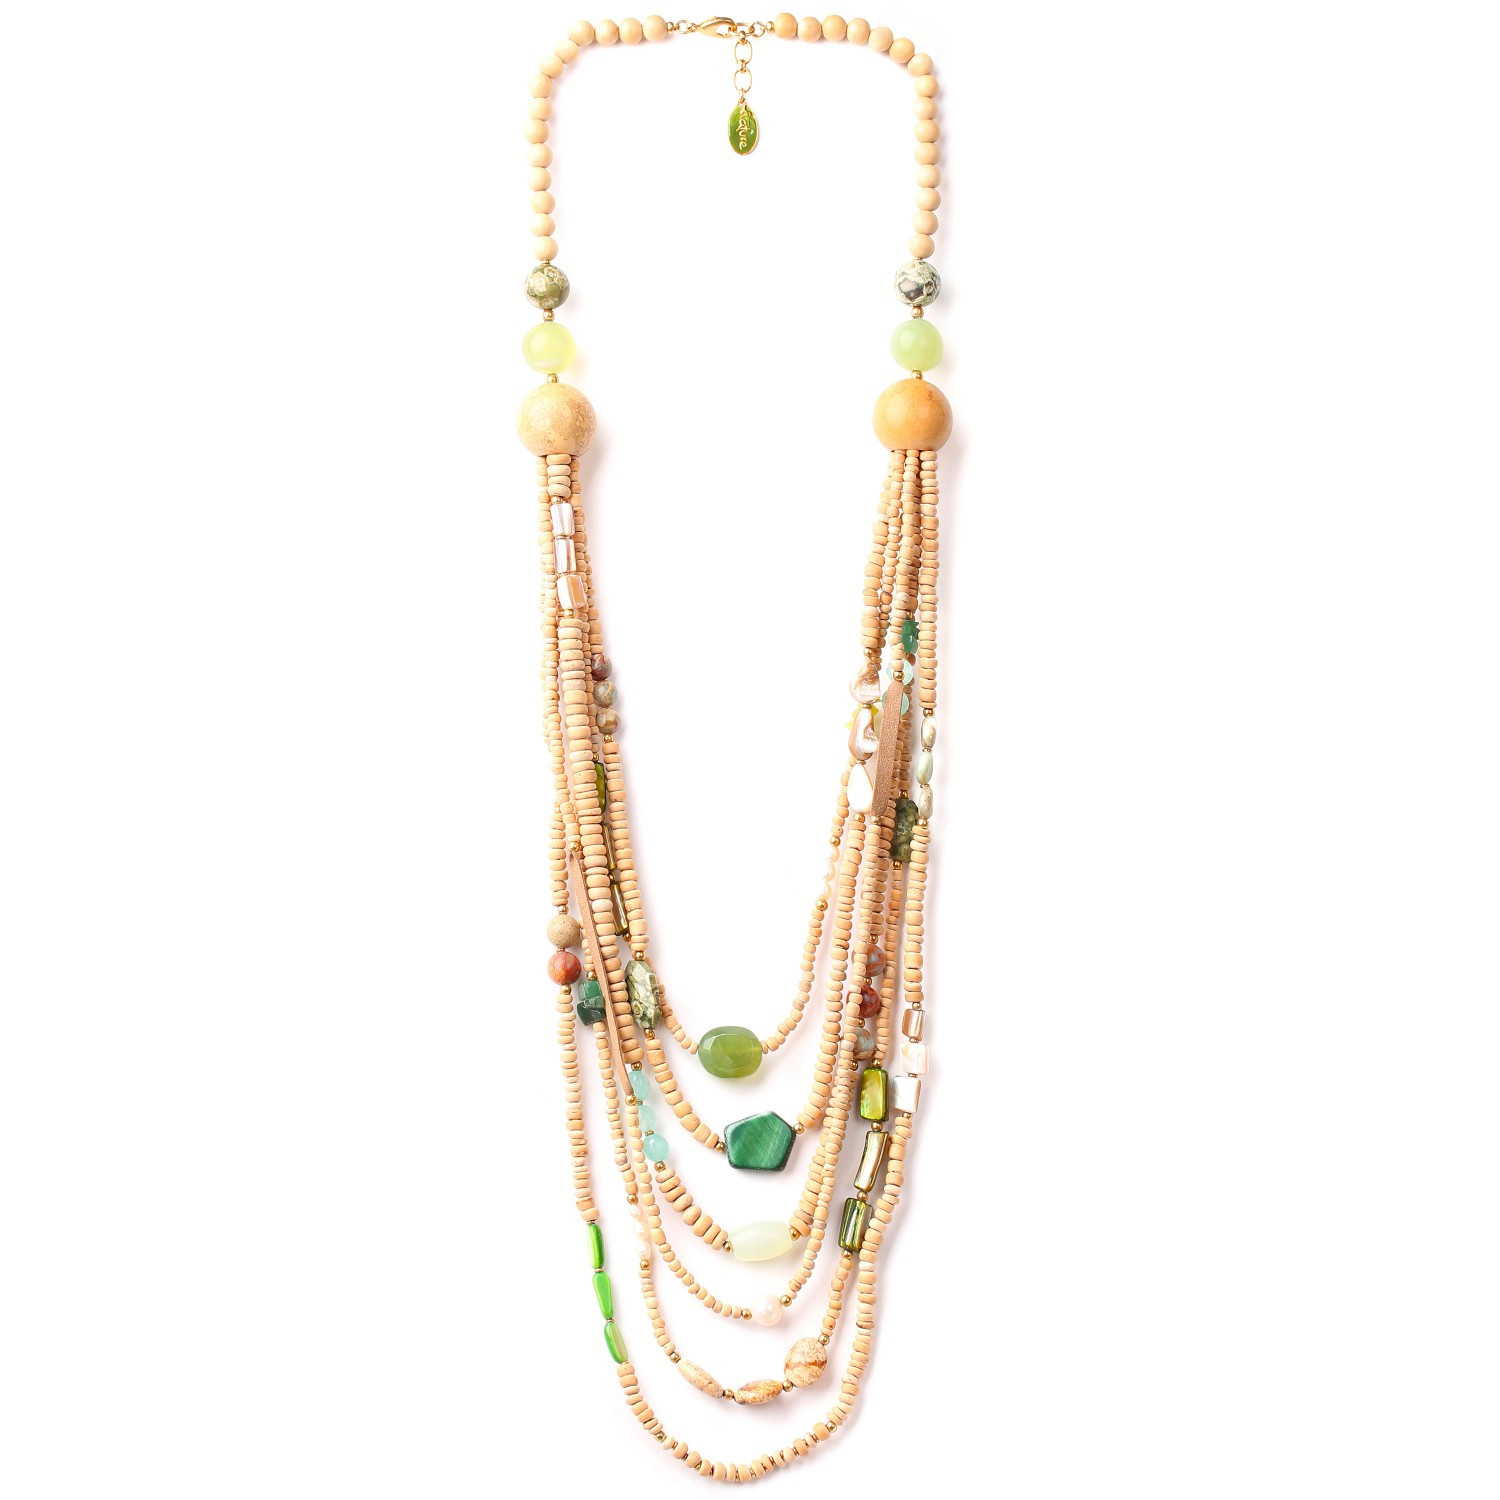 DANUBE 6-row long necklace